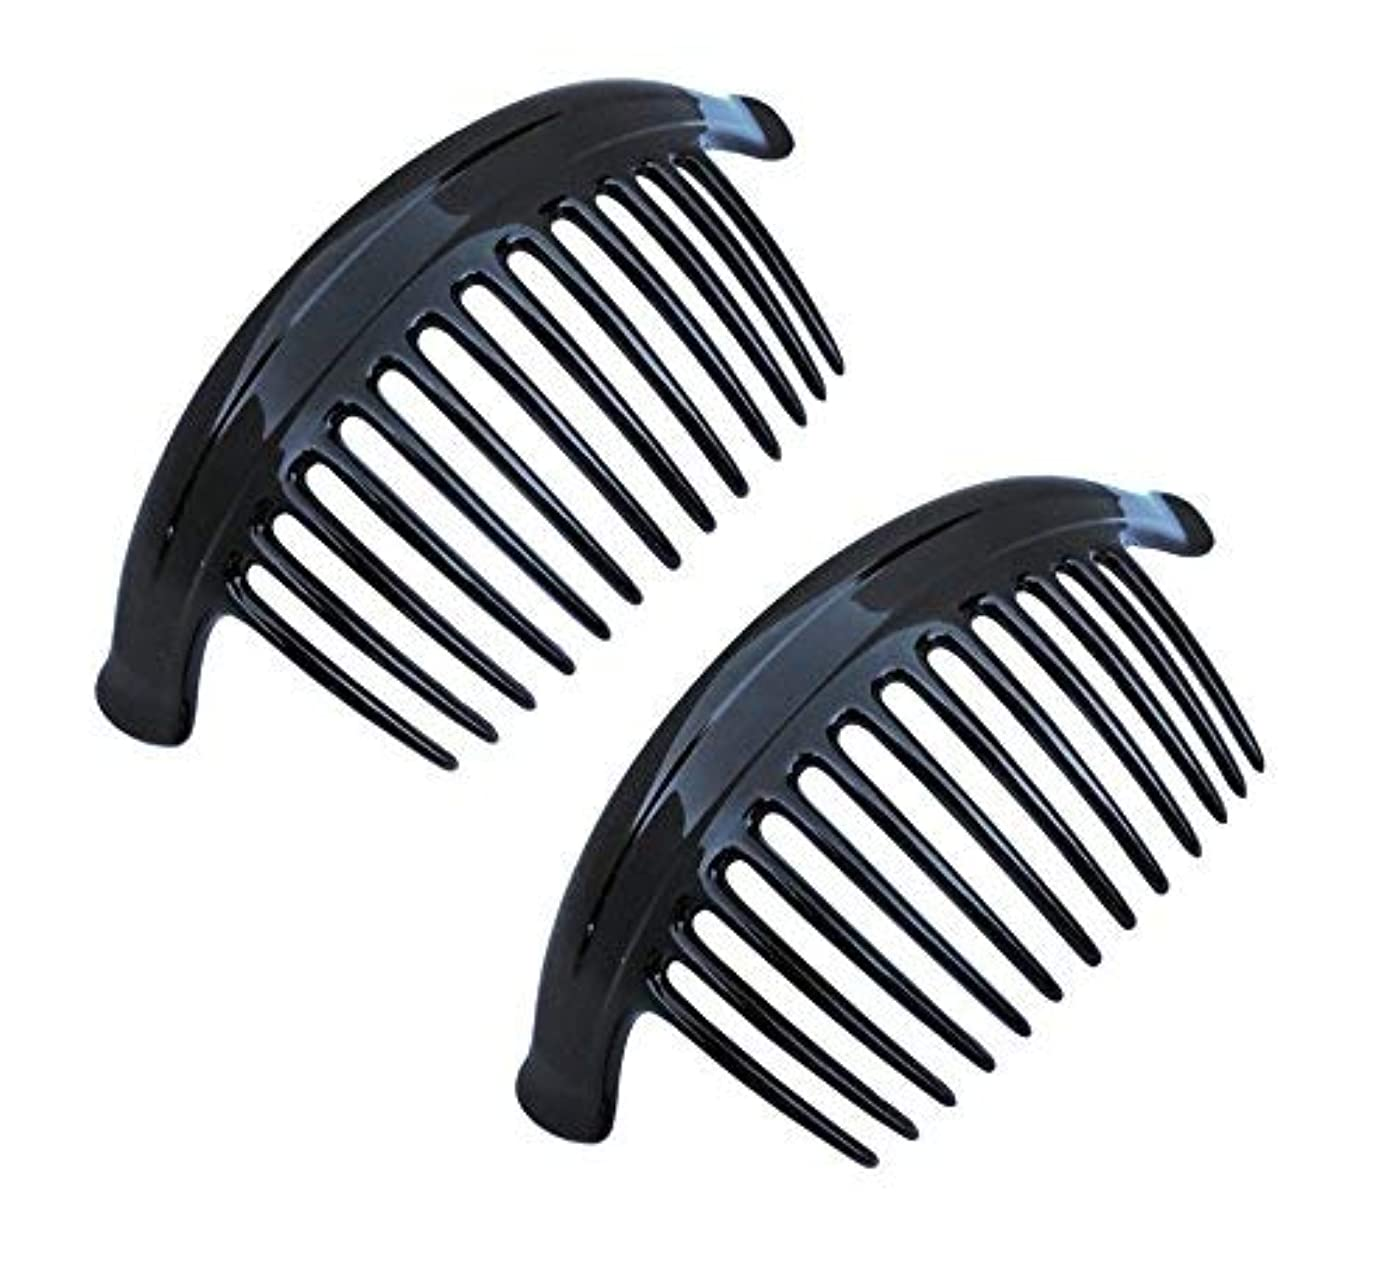 変数比率要塞Parcelona French Arch Extra Large Black 13 Teeth Interlocking Side Hair Combs Pair [並行輸入品]